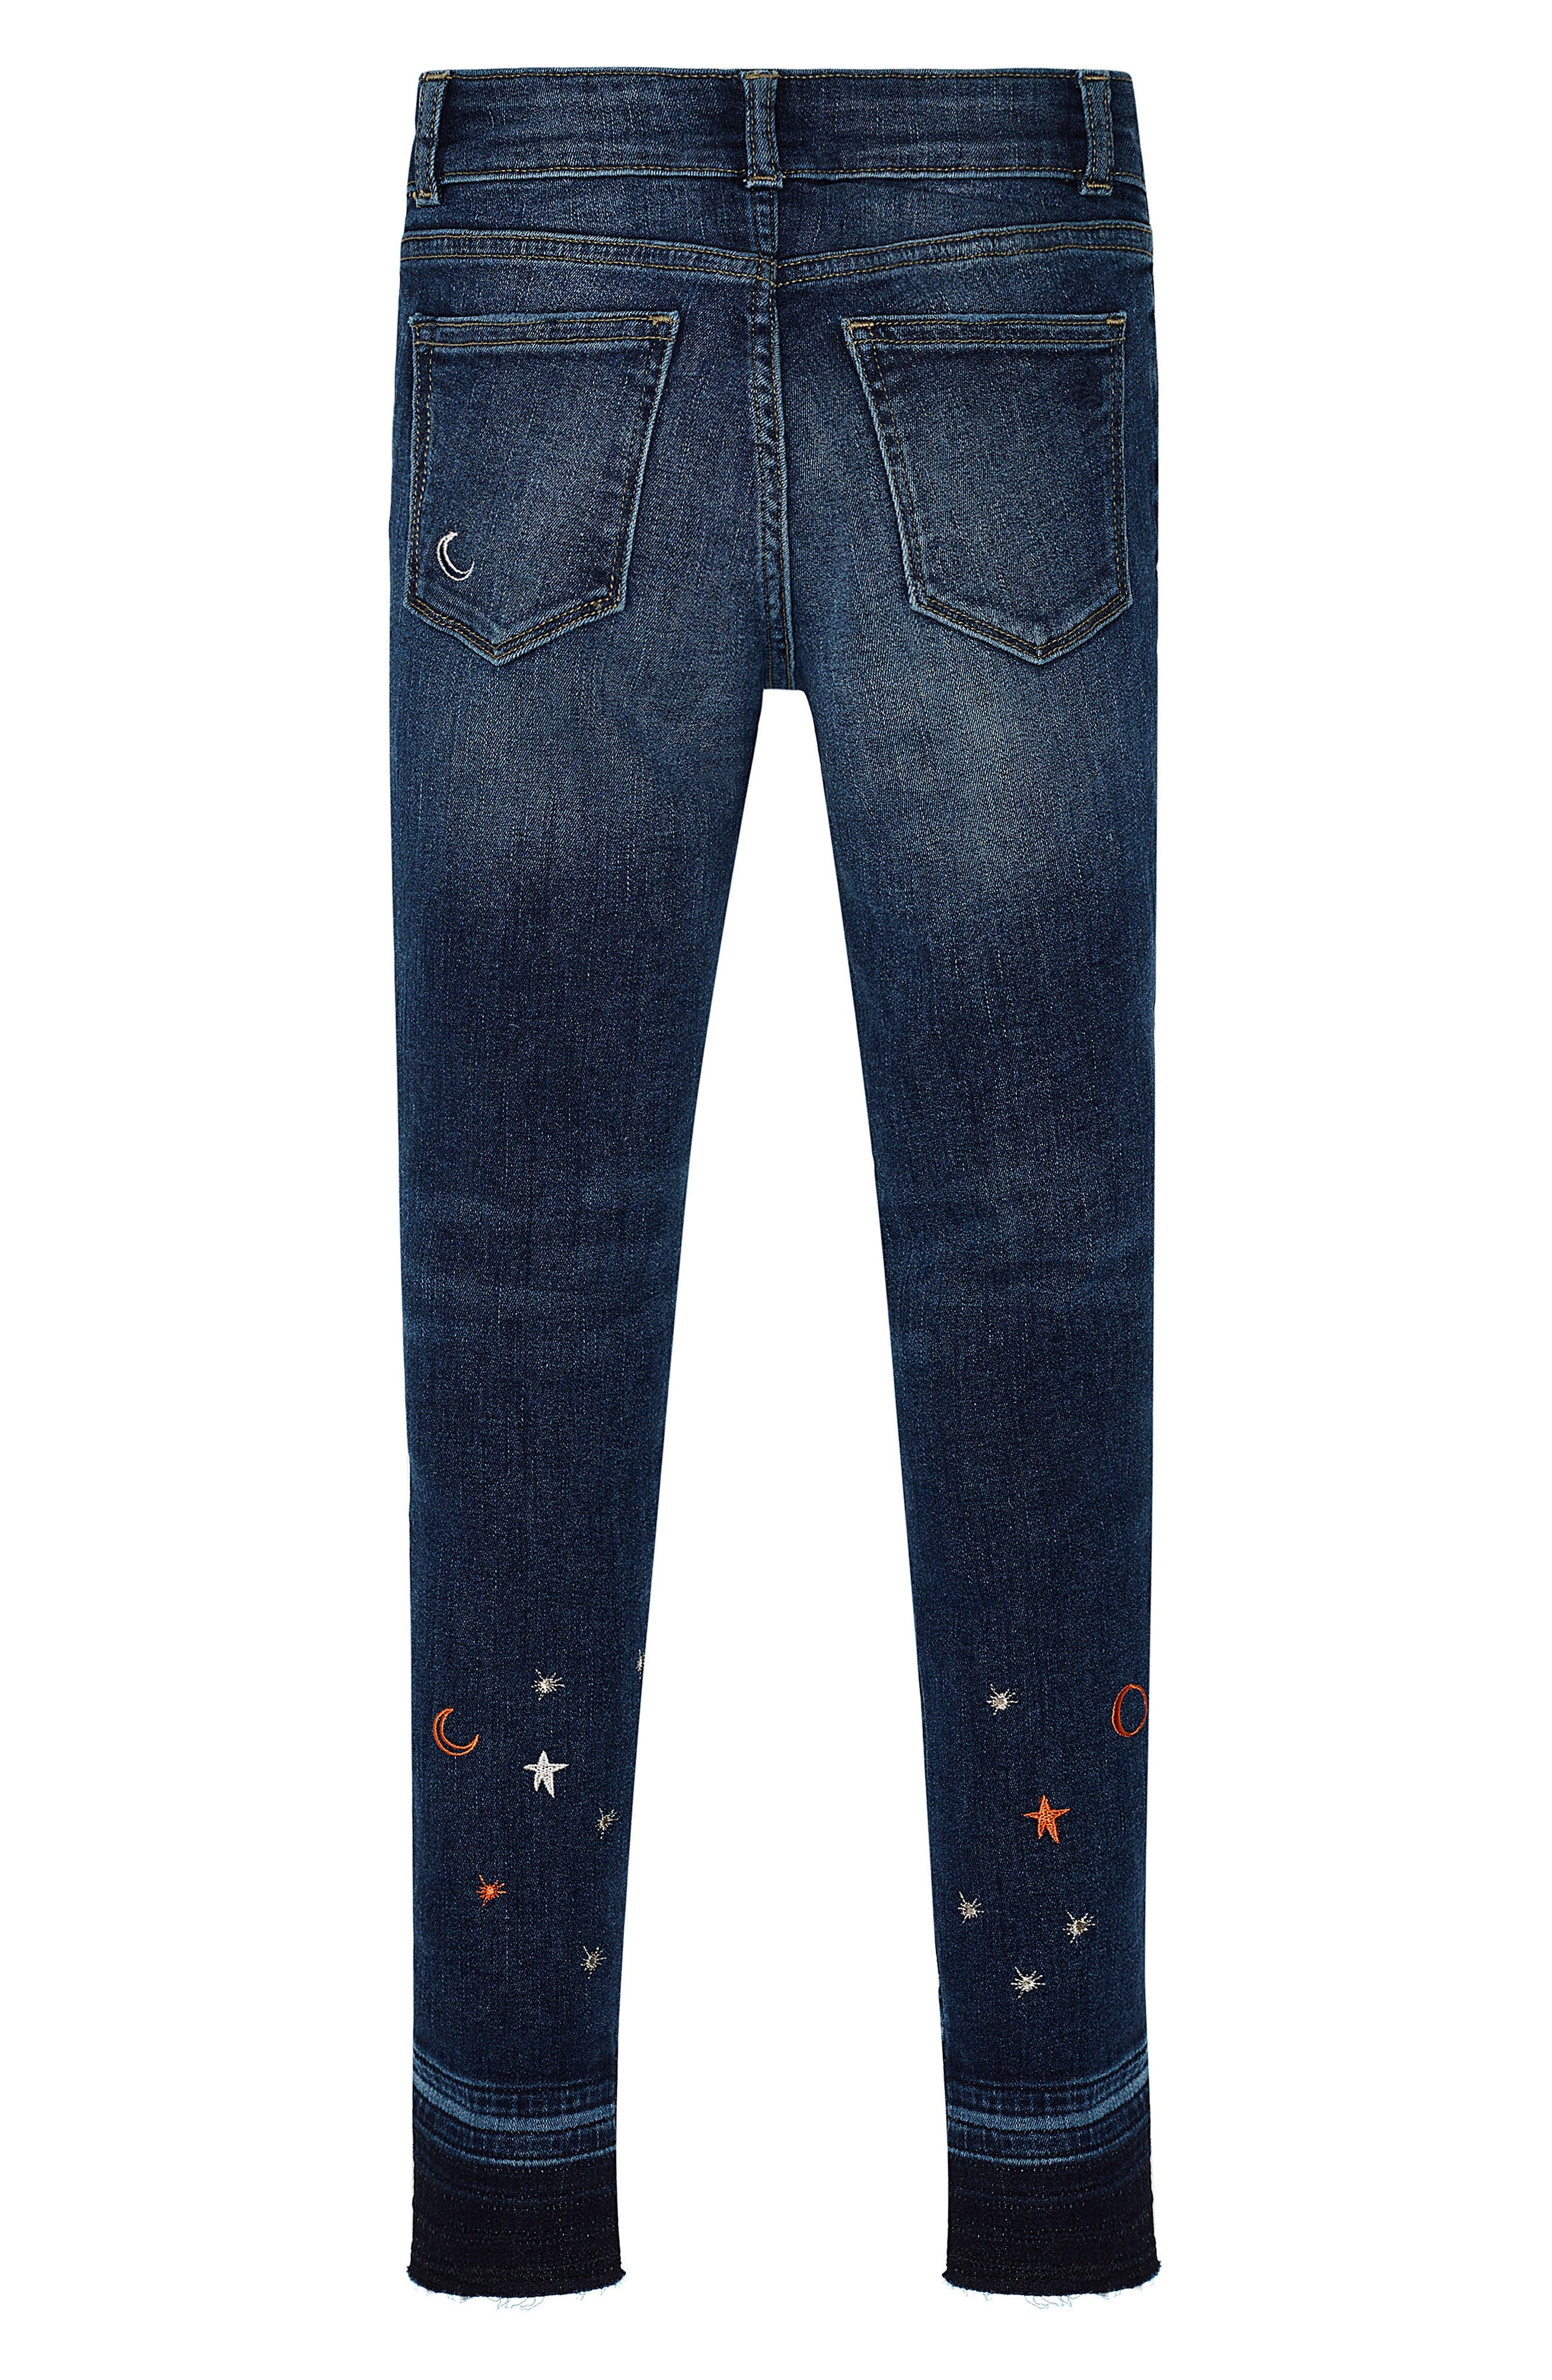 Chloe Galaxy Embroidered Skinny Jeans,                             Alternate thumbnail 2, color,                             406